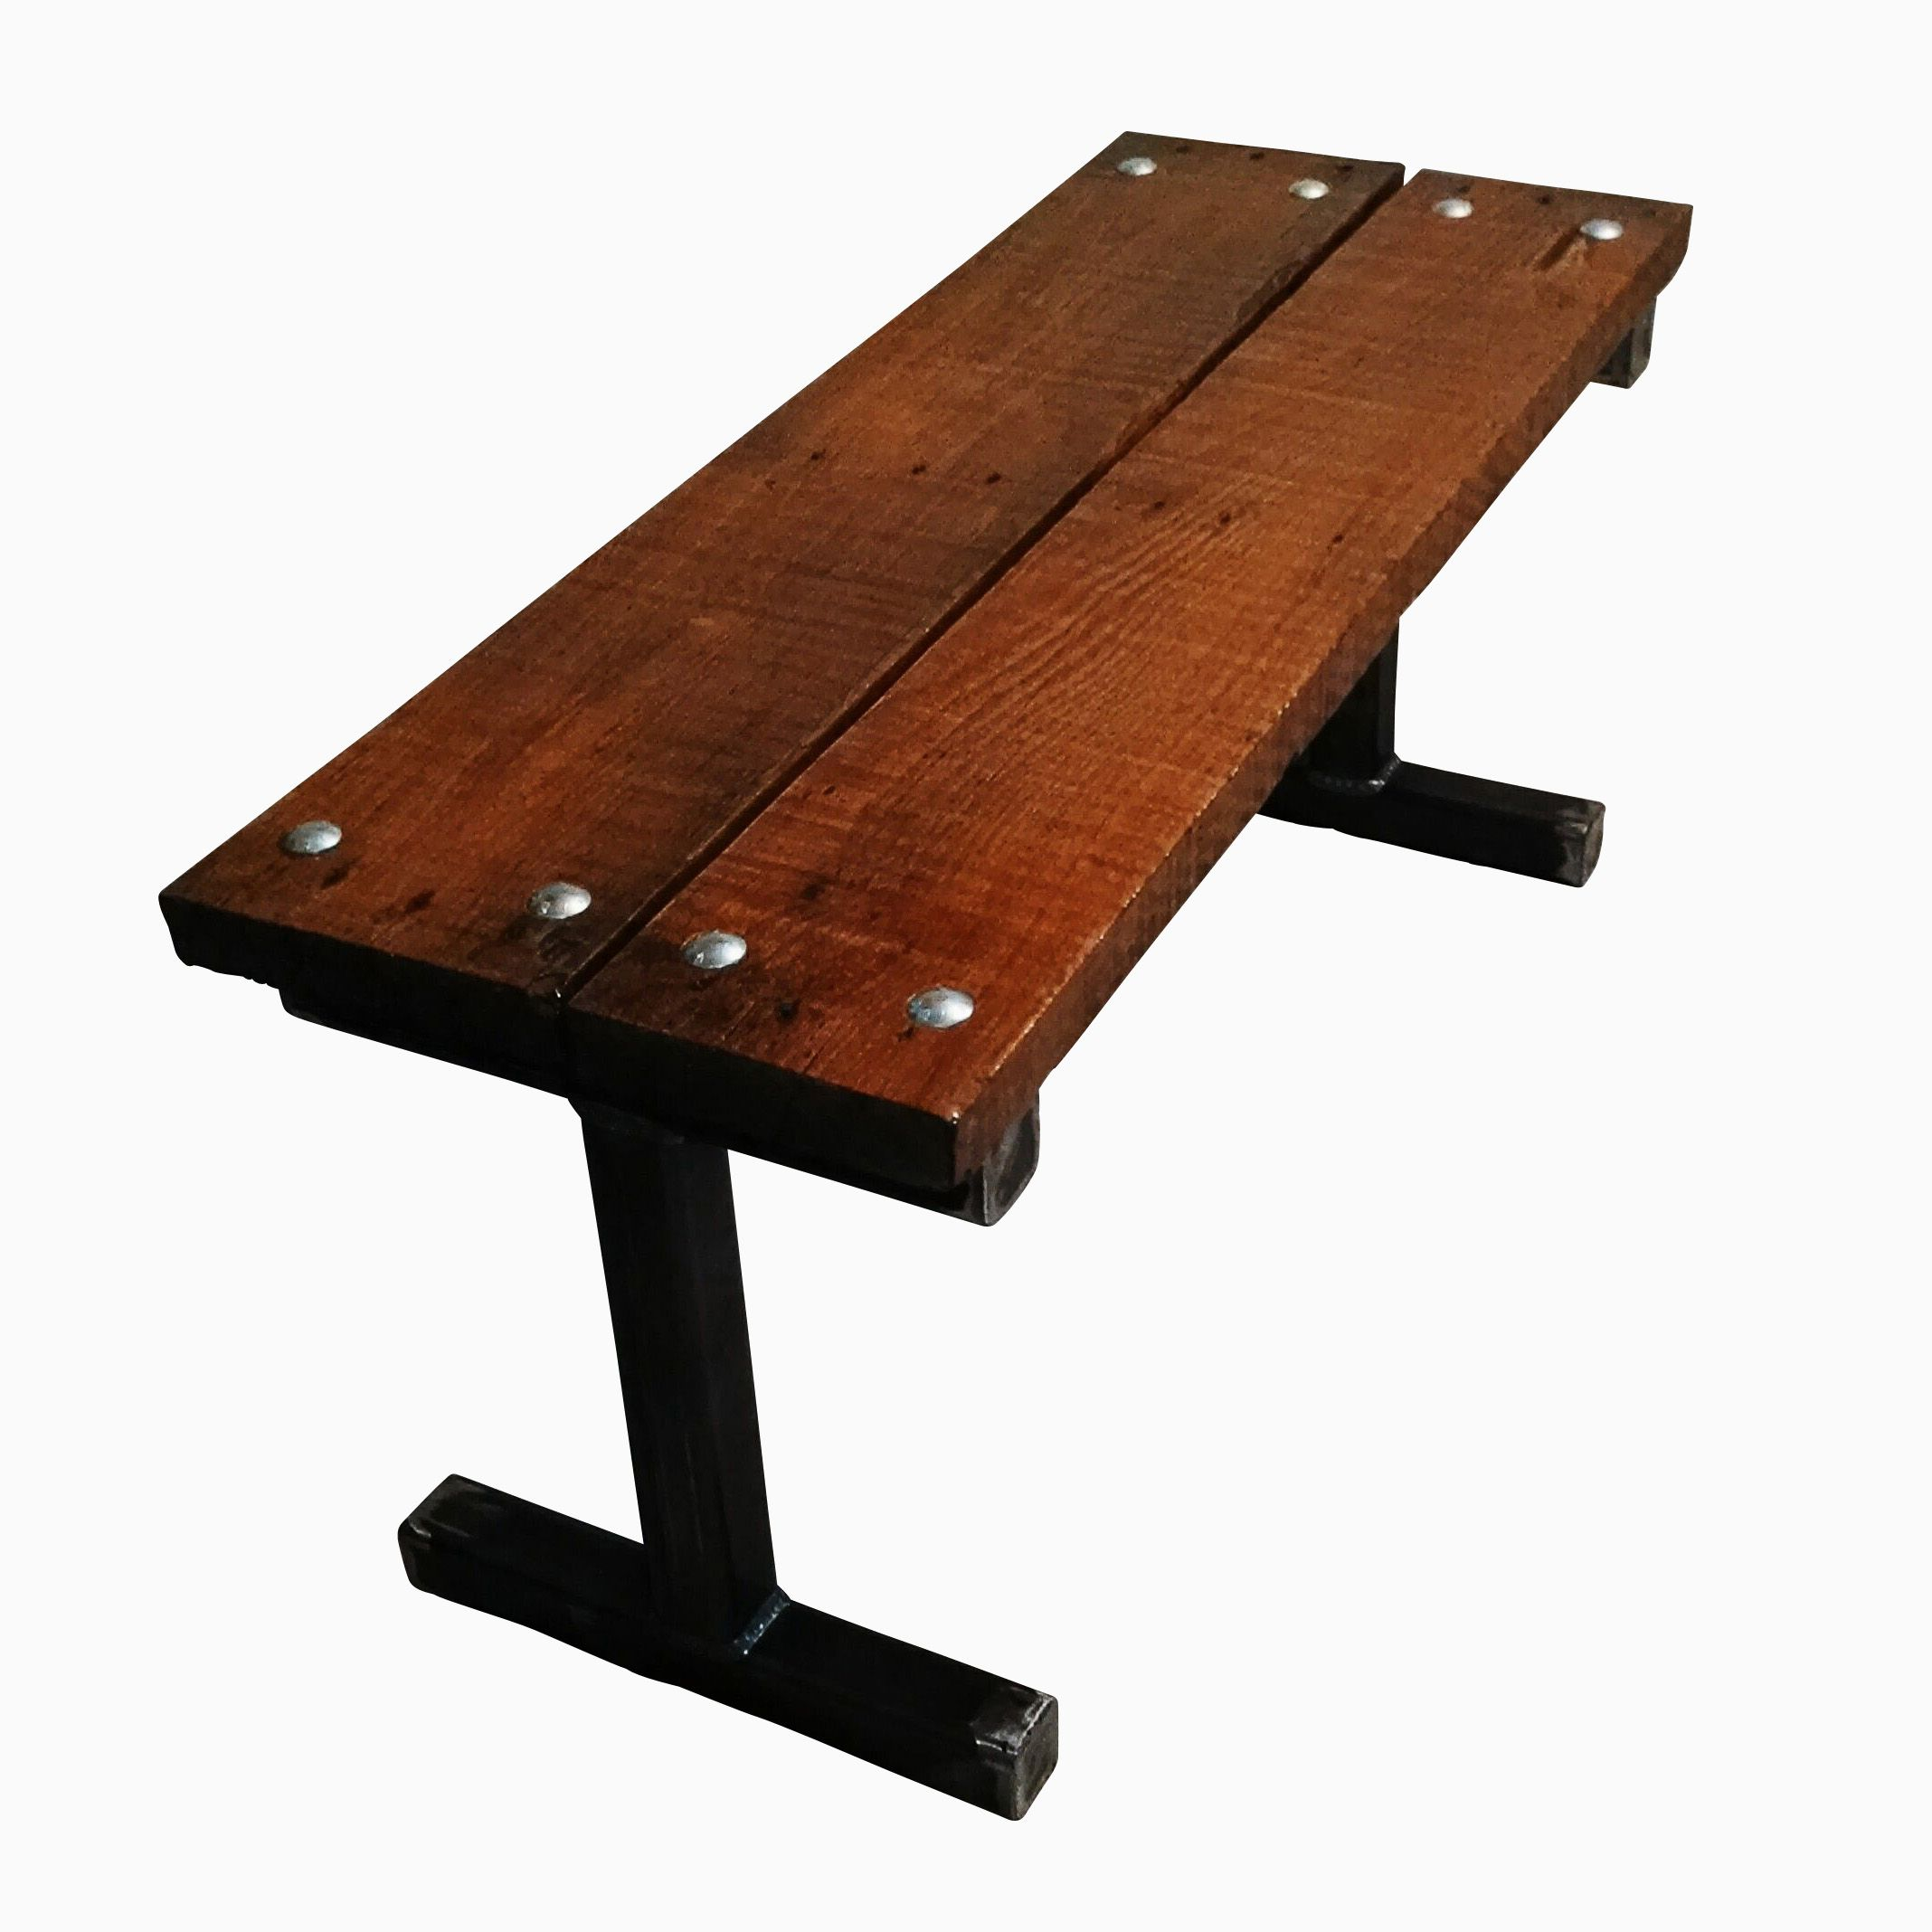 Superb img of Buy a Handmade Reclaimed Pallet Wood Bench With Carriage Bolts Frame  with #73381B color and 2136x2136 pixels